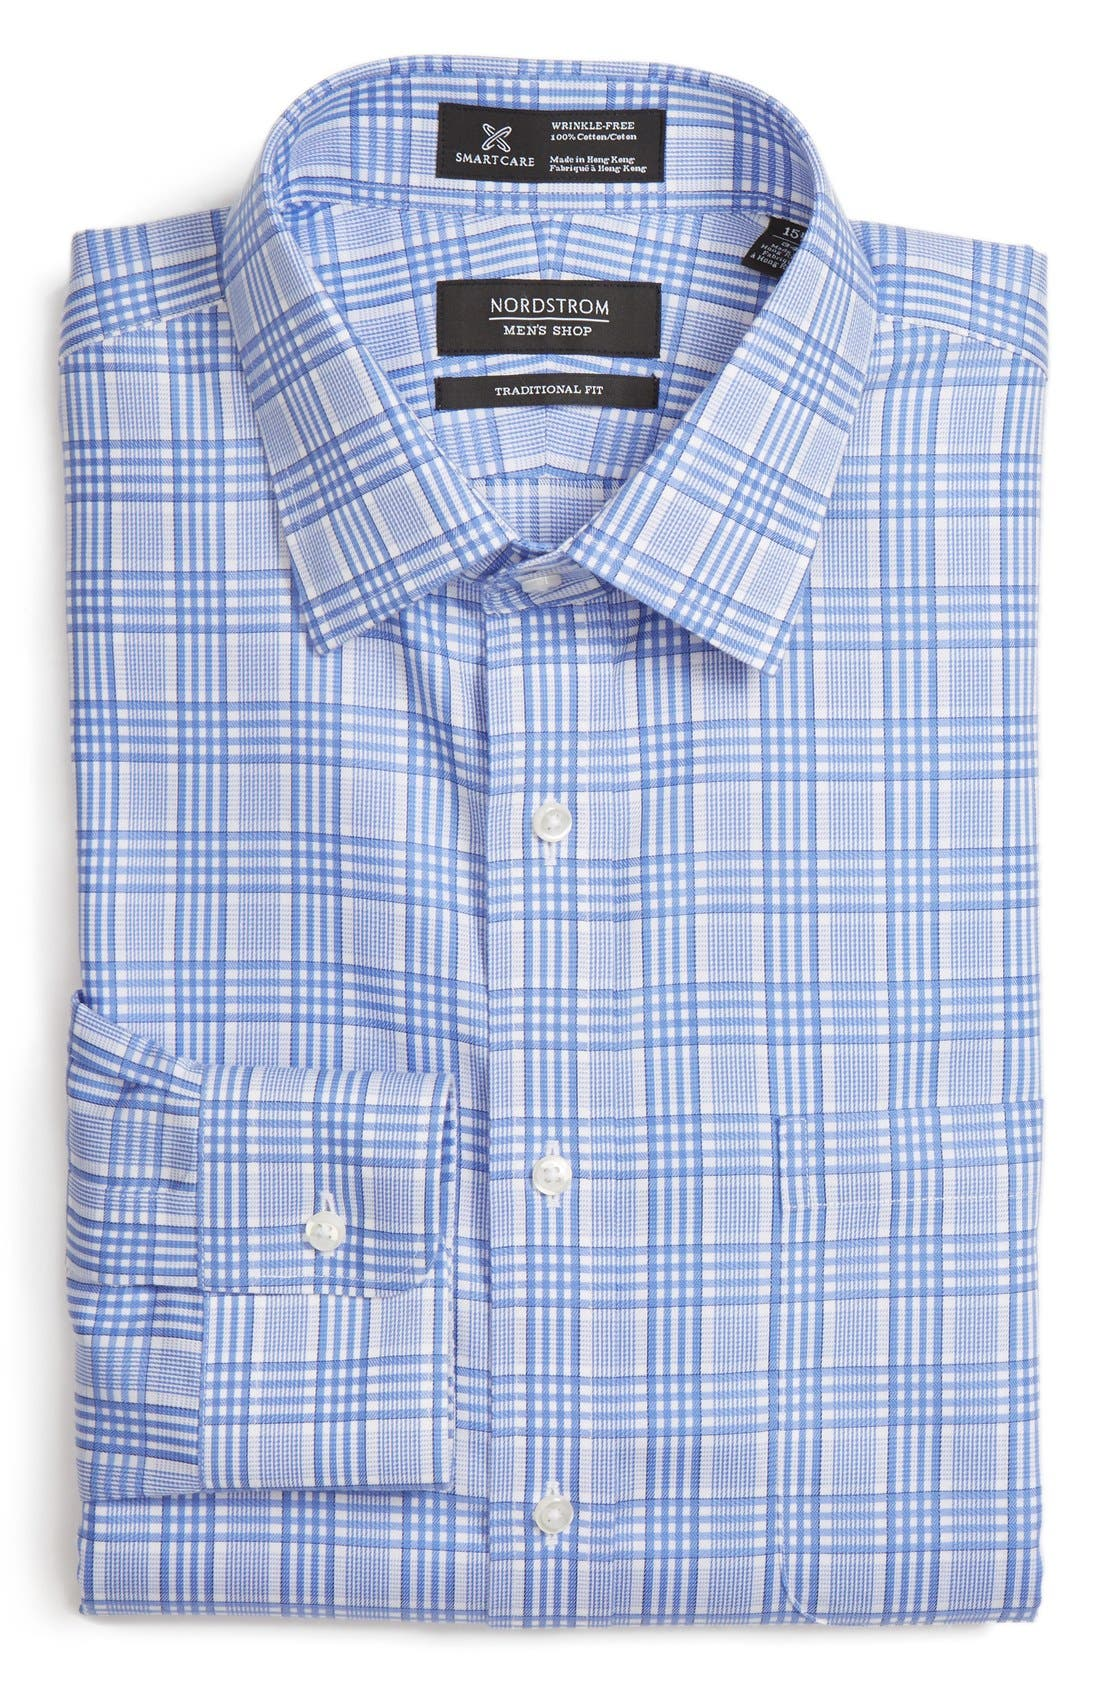 NORDSTROM MEN'S SHOP Smartcare™ Traditional Fit Check Dress